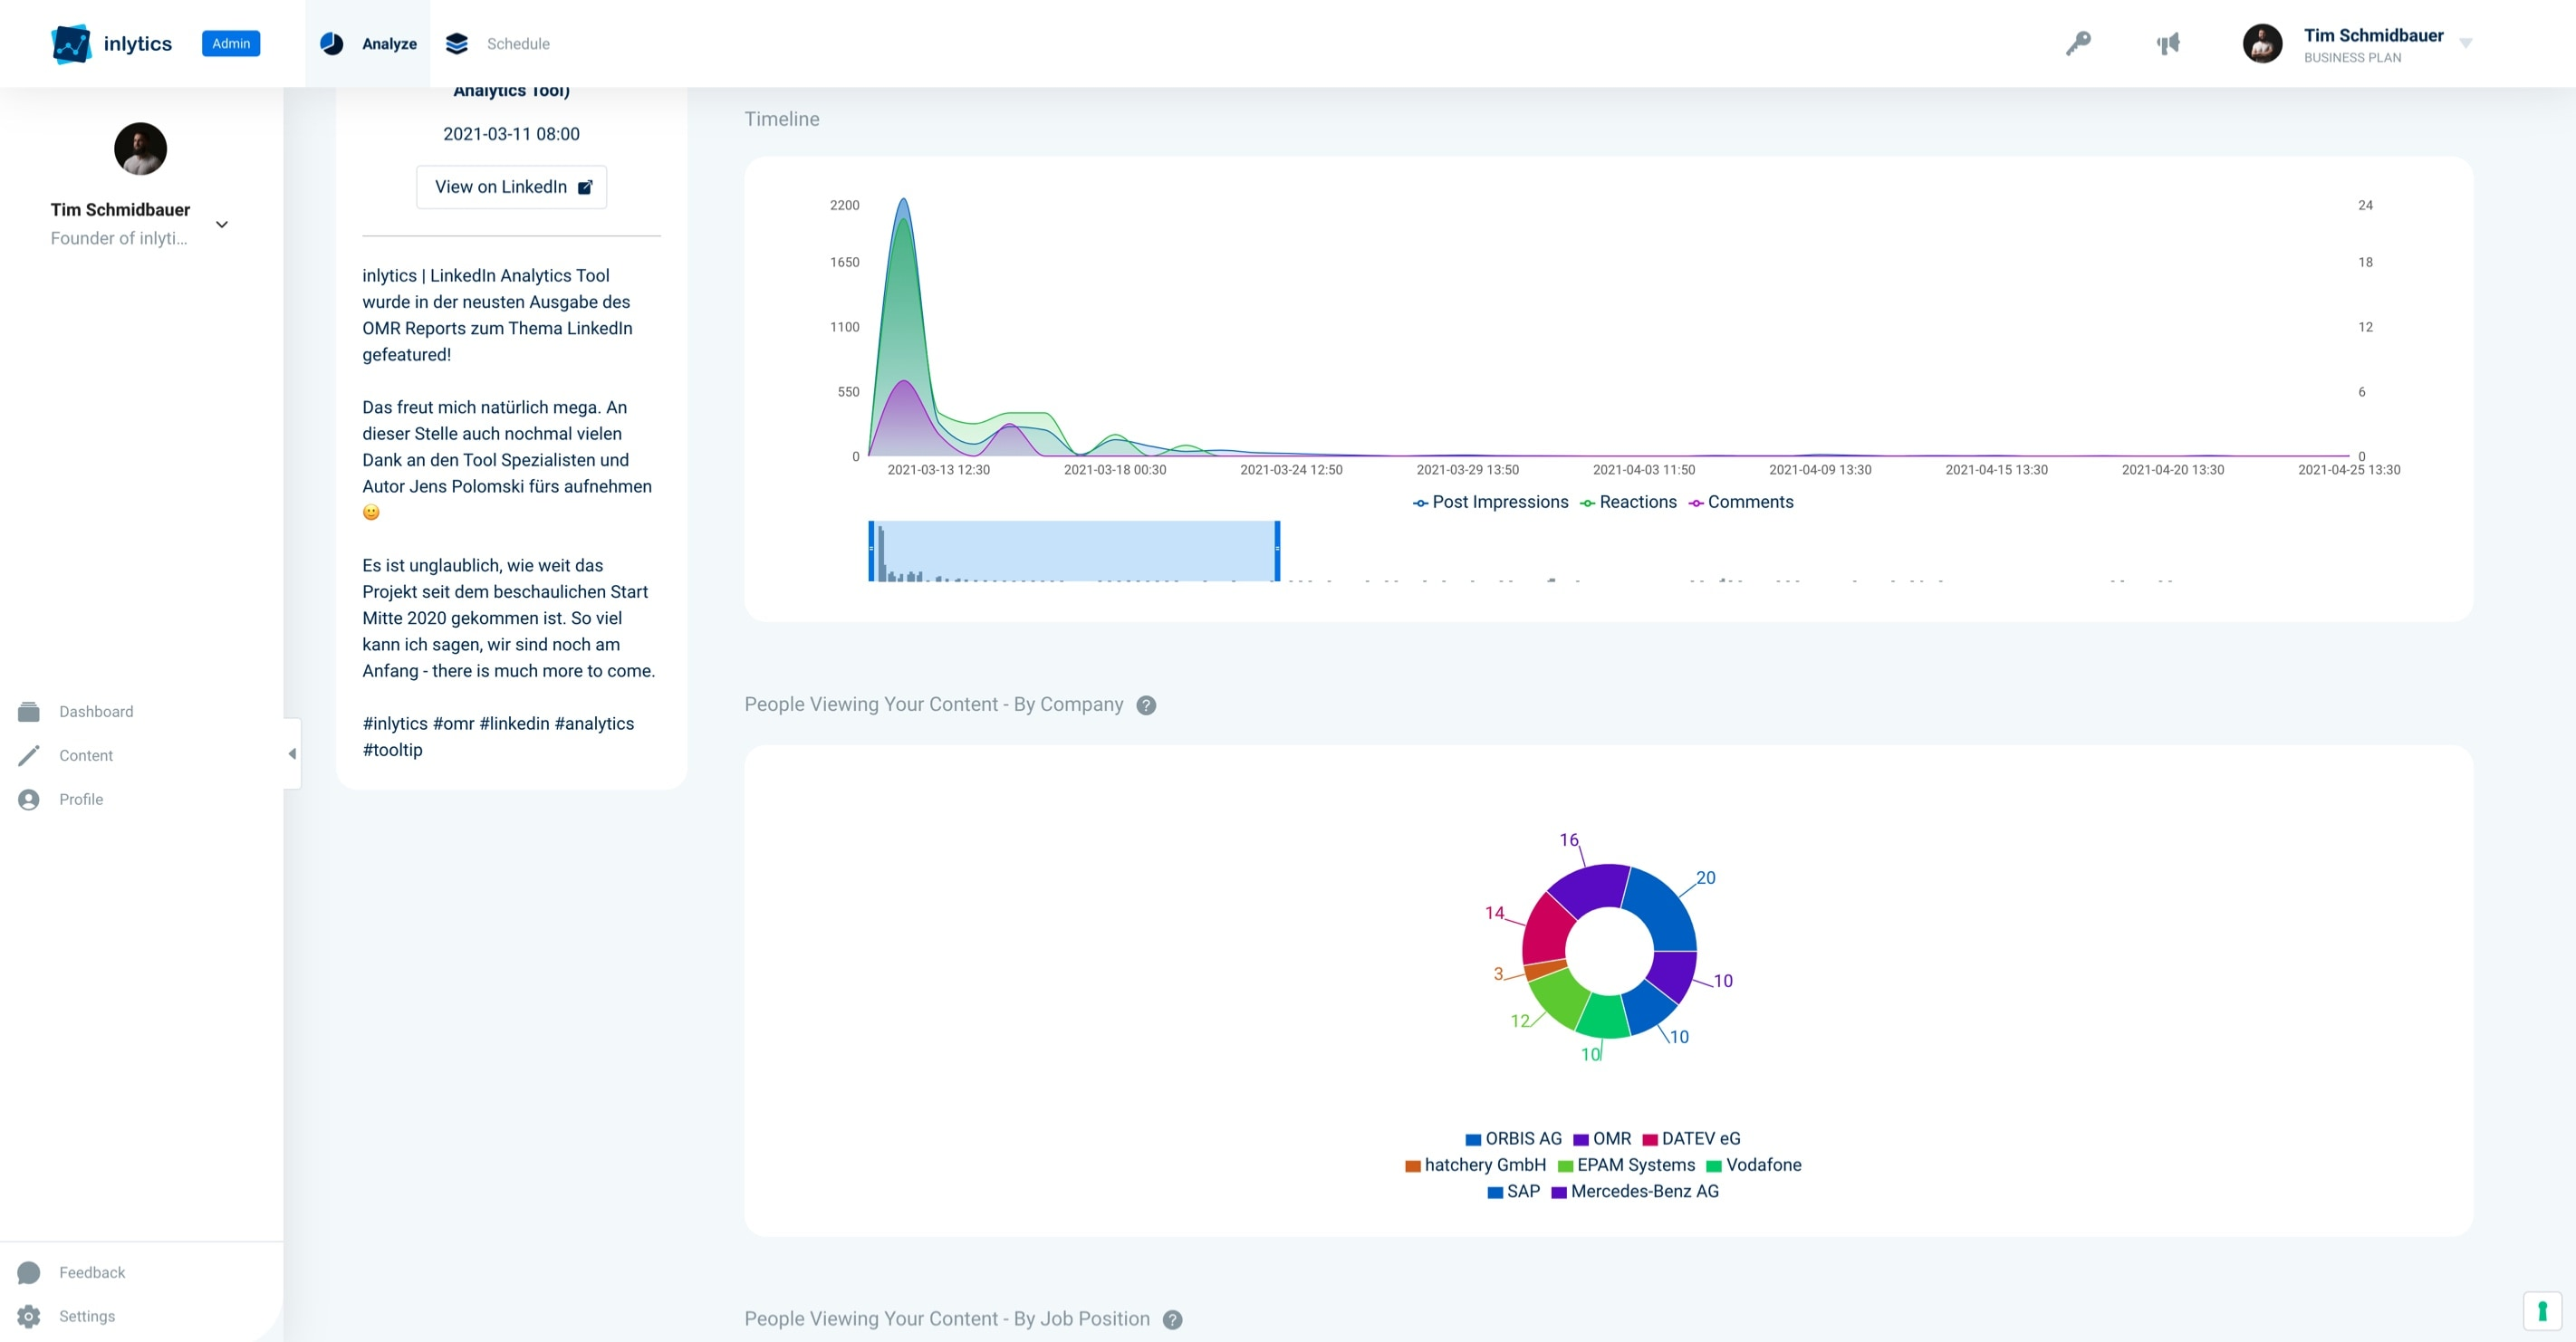 LinkedIn Analytics Tool inlytics for personal branding and companies